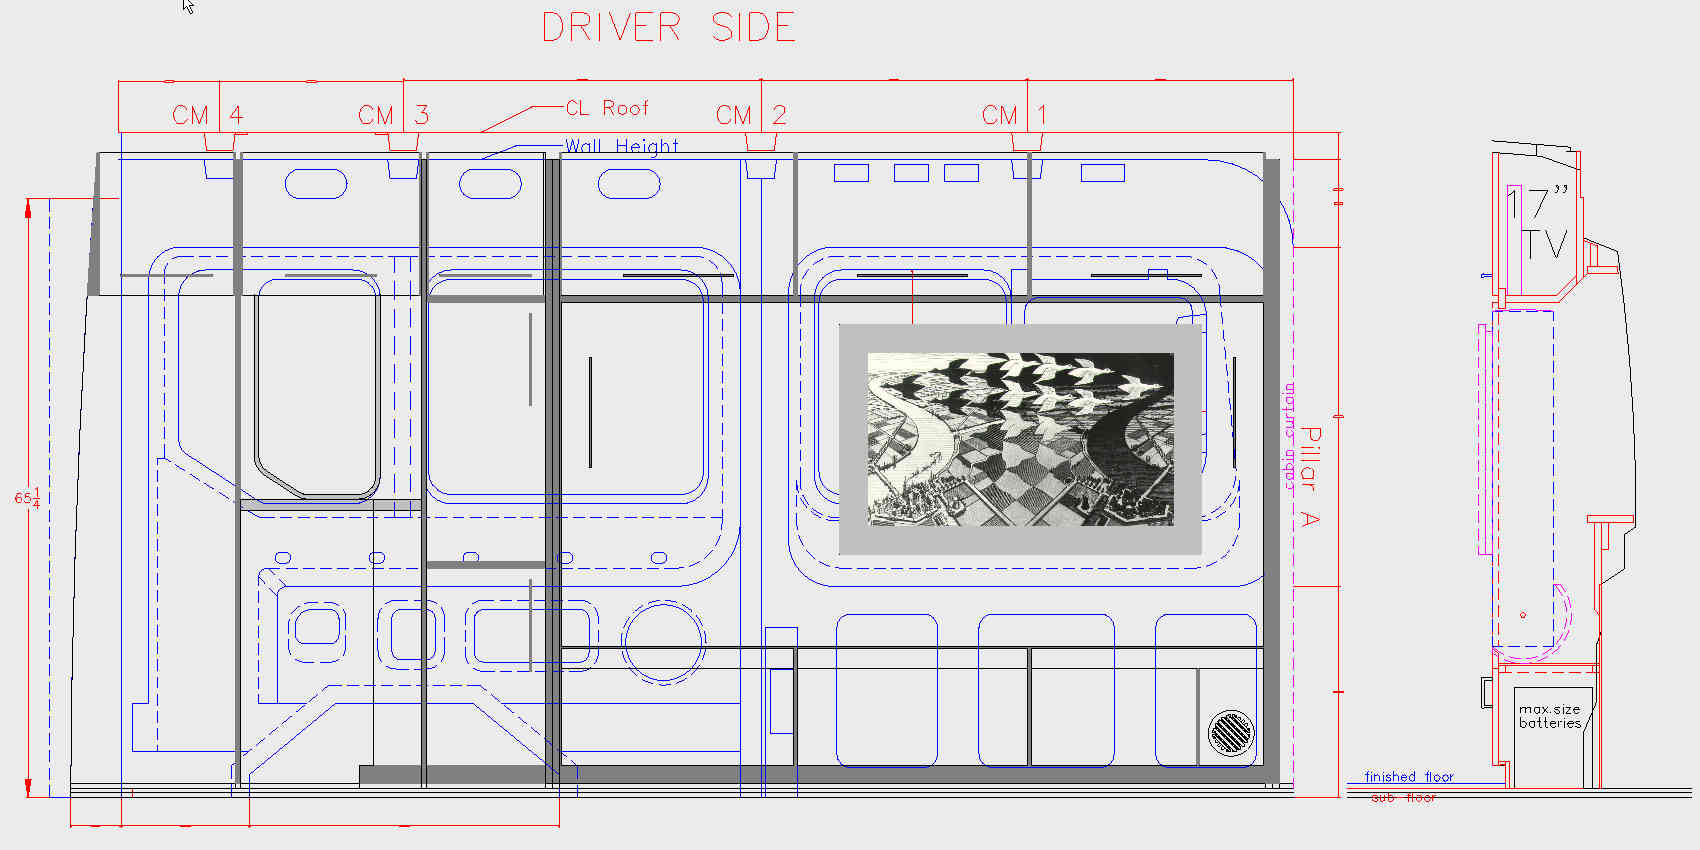 trailer wiring diagram south africa distributed control system murphy bed design   cargovanconversion.com